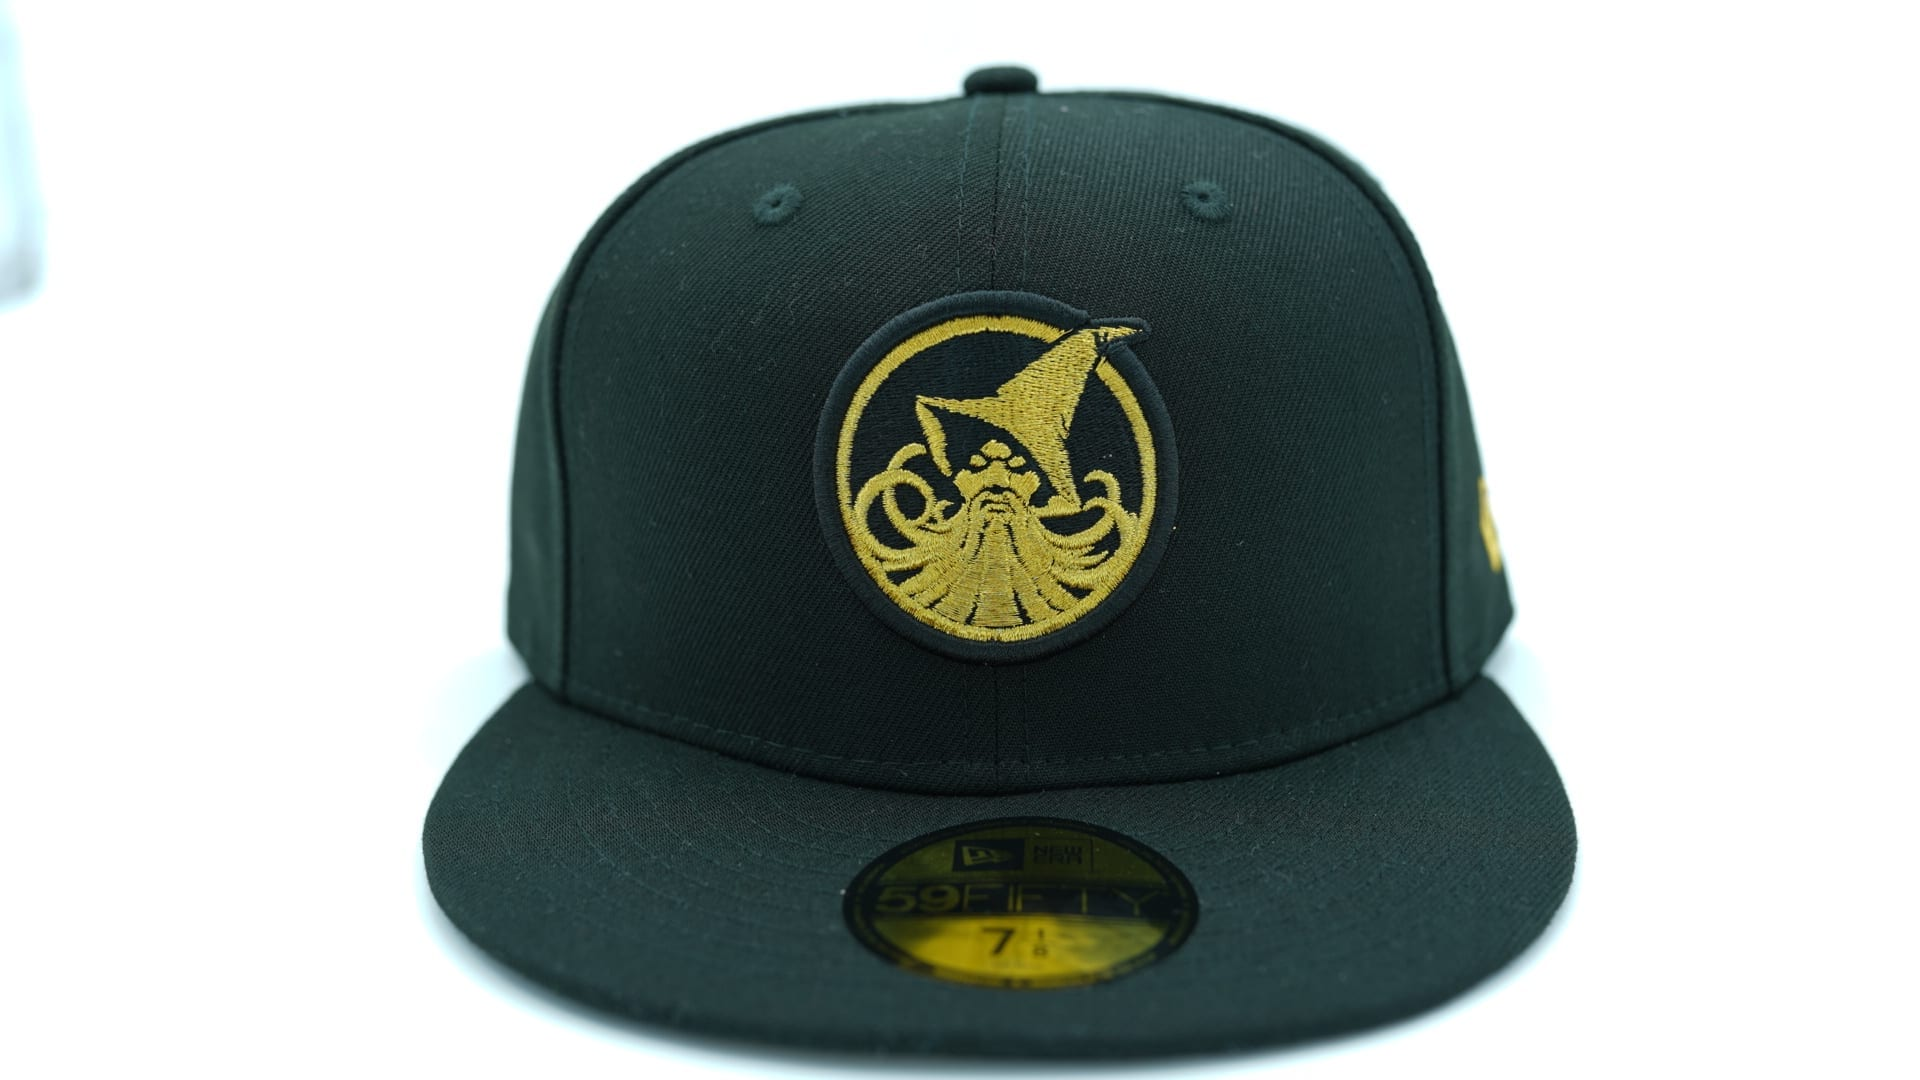 low profile fitted baseball cap hats angels year anniversary era